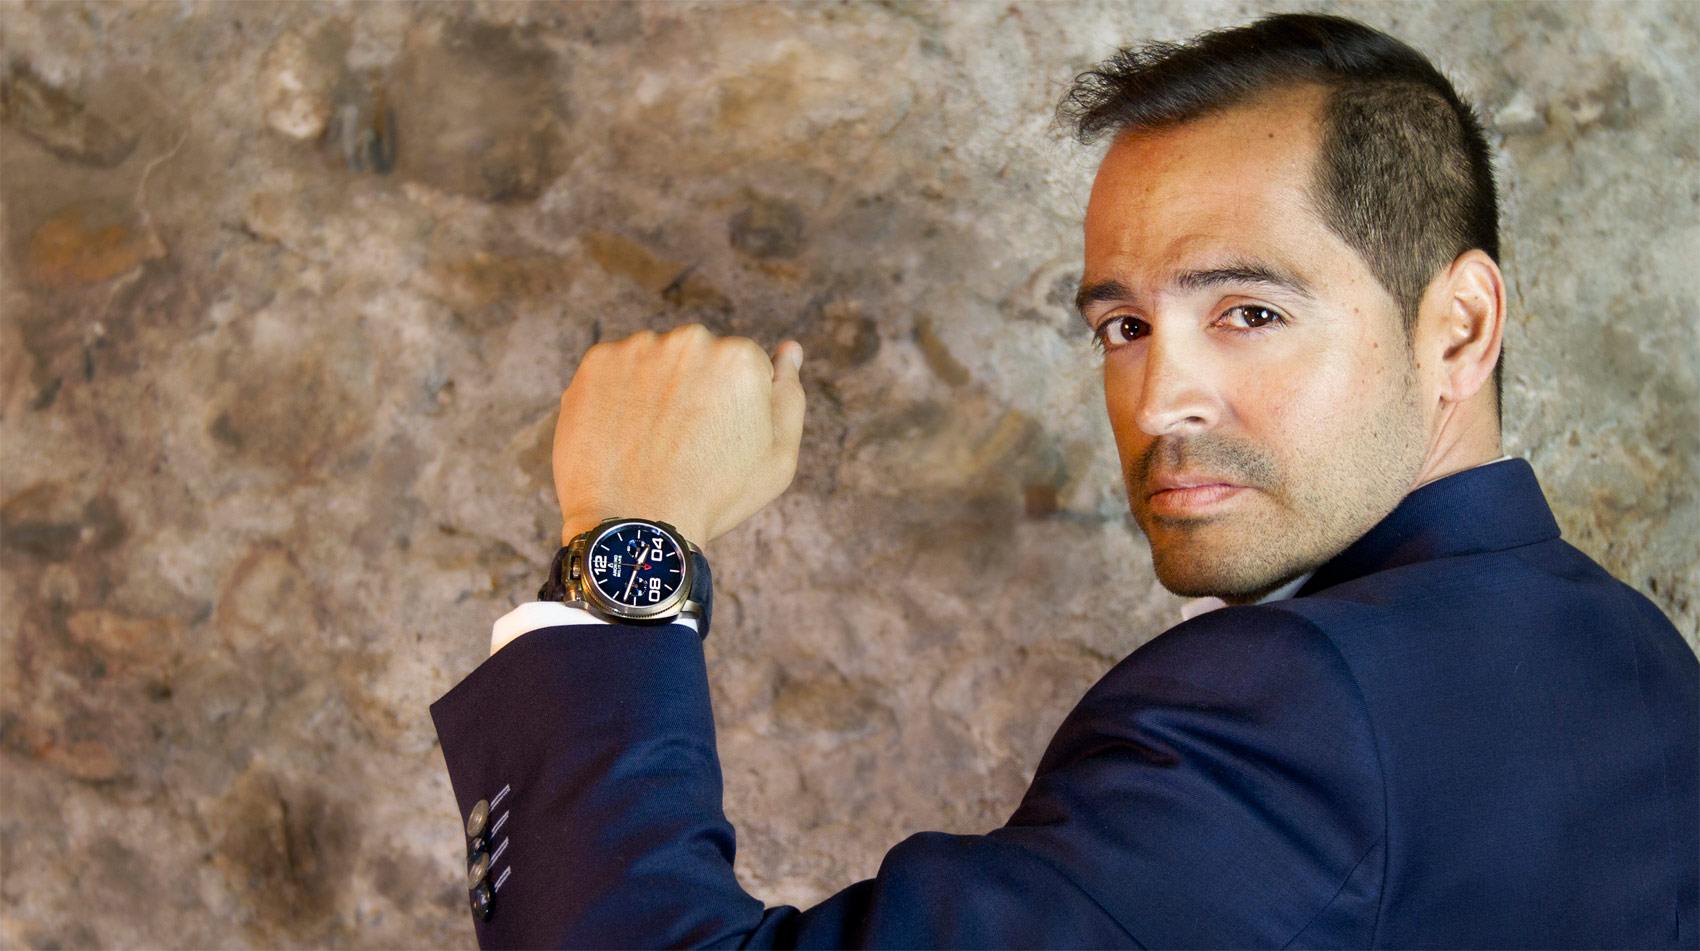 Swiss Watch Brand Anonimo Unveils Their New CEO